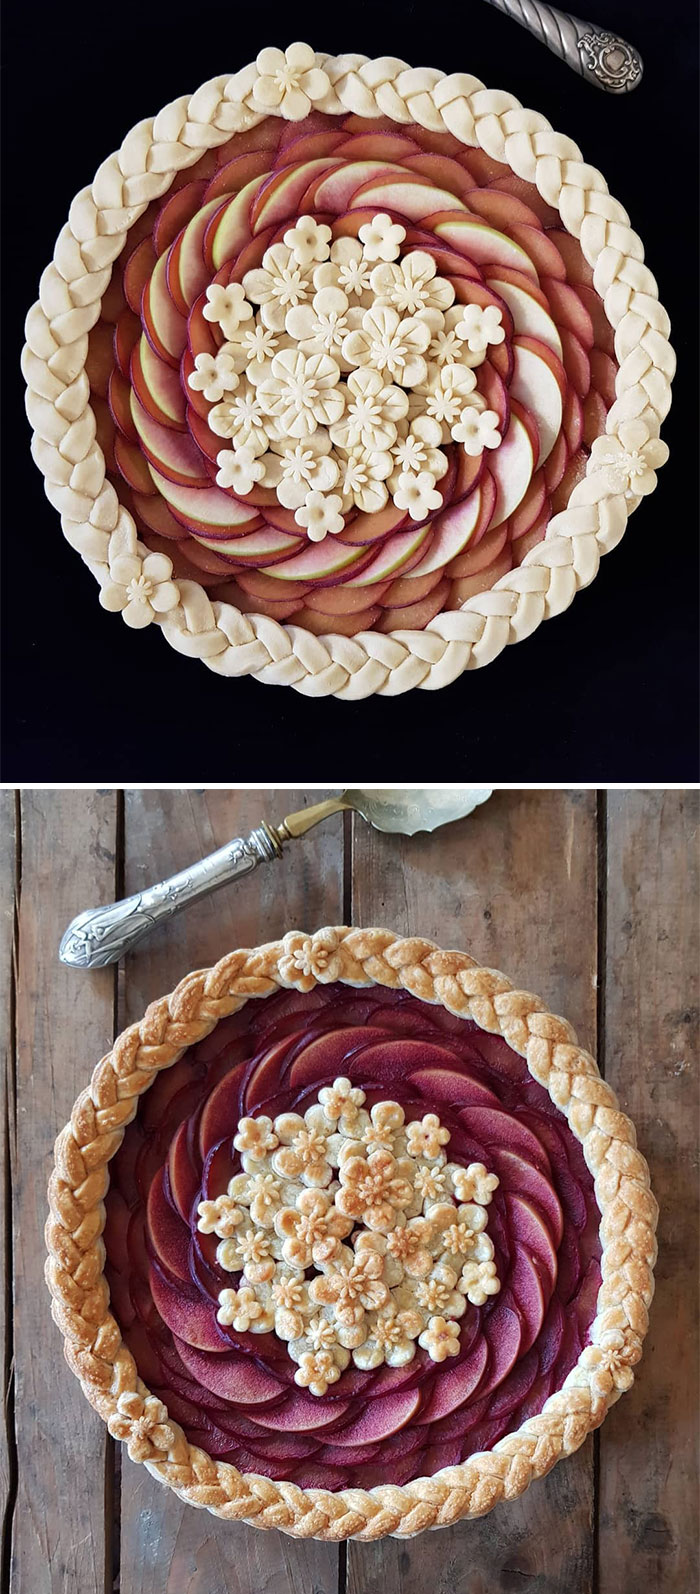 This German Baker Turned Pie Baking Into An Art Form (35 Pics)